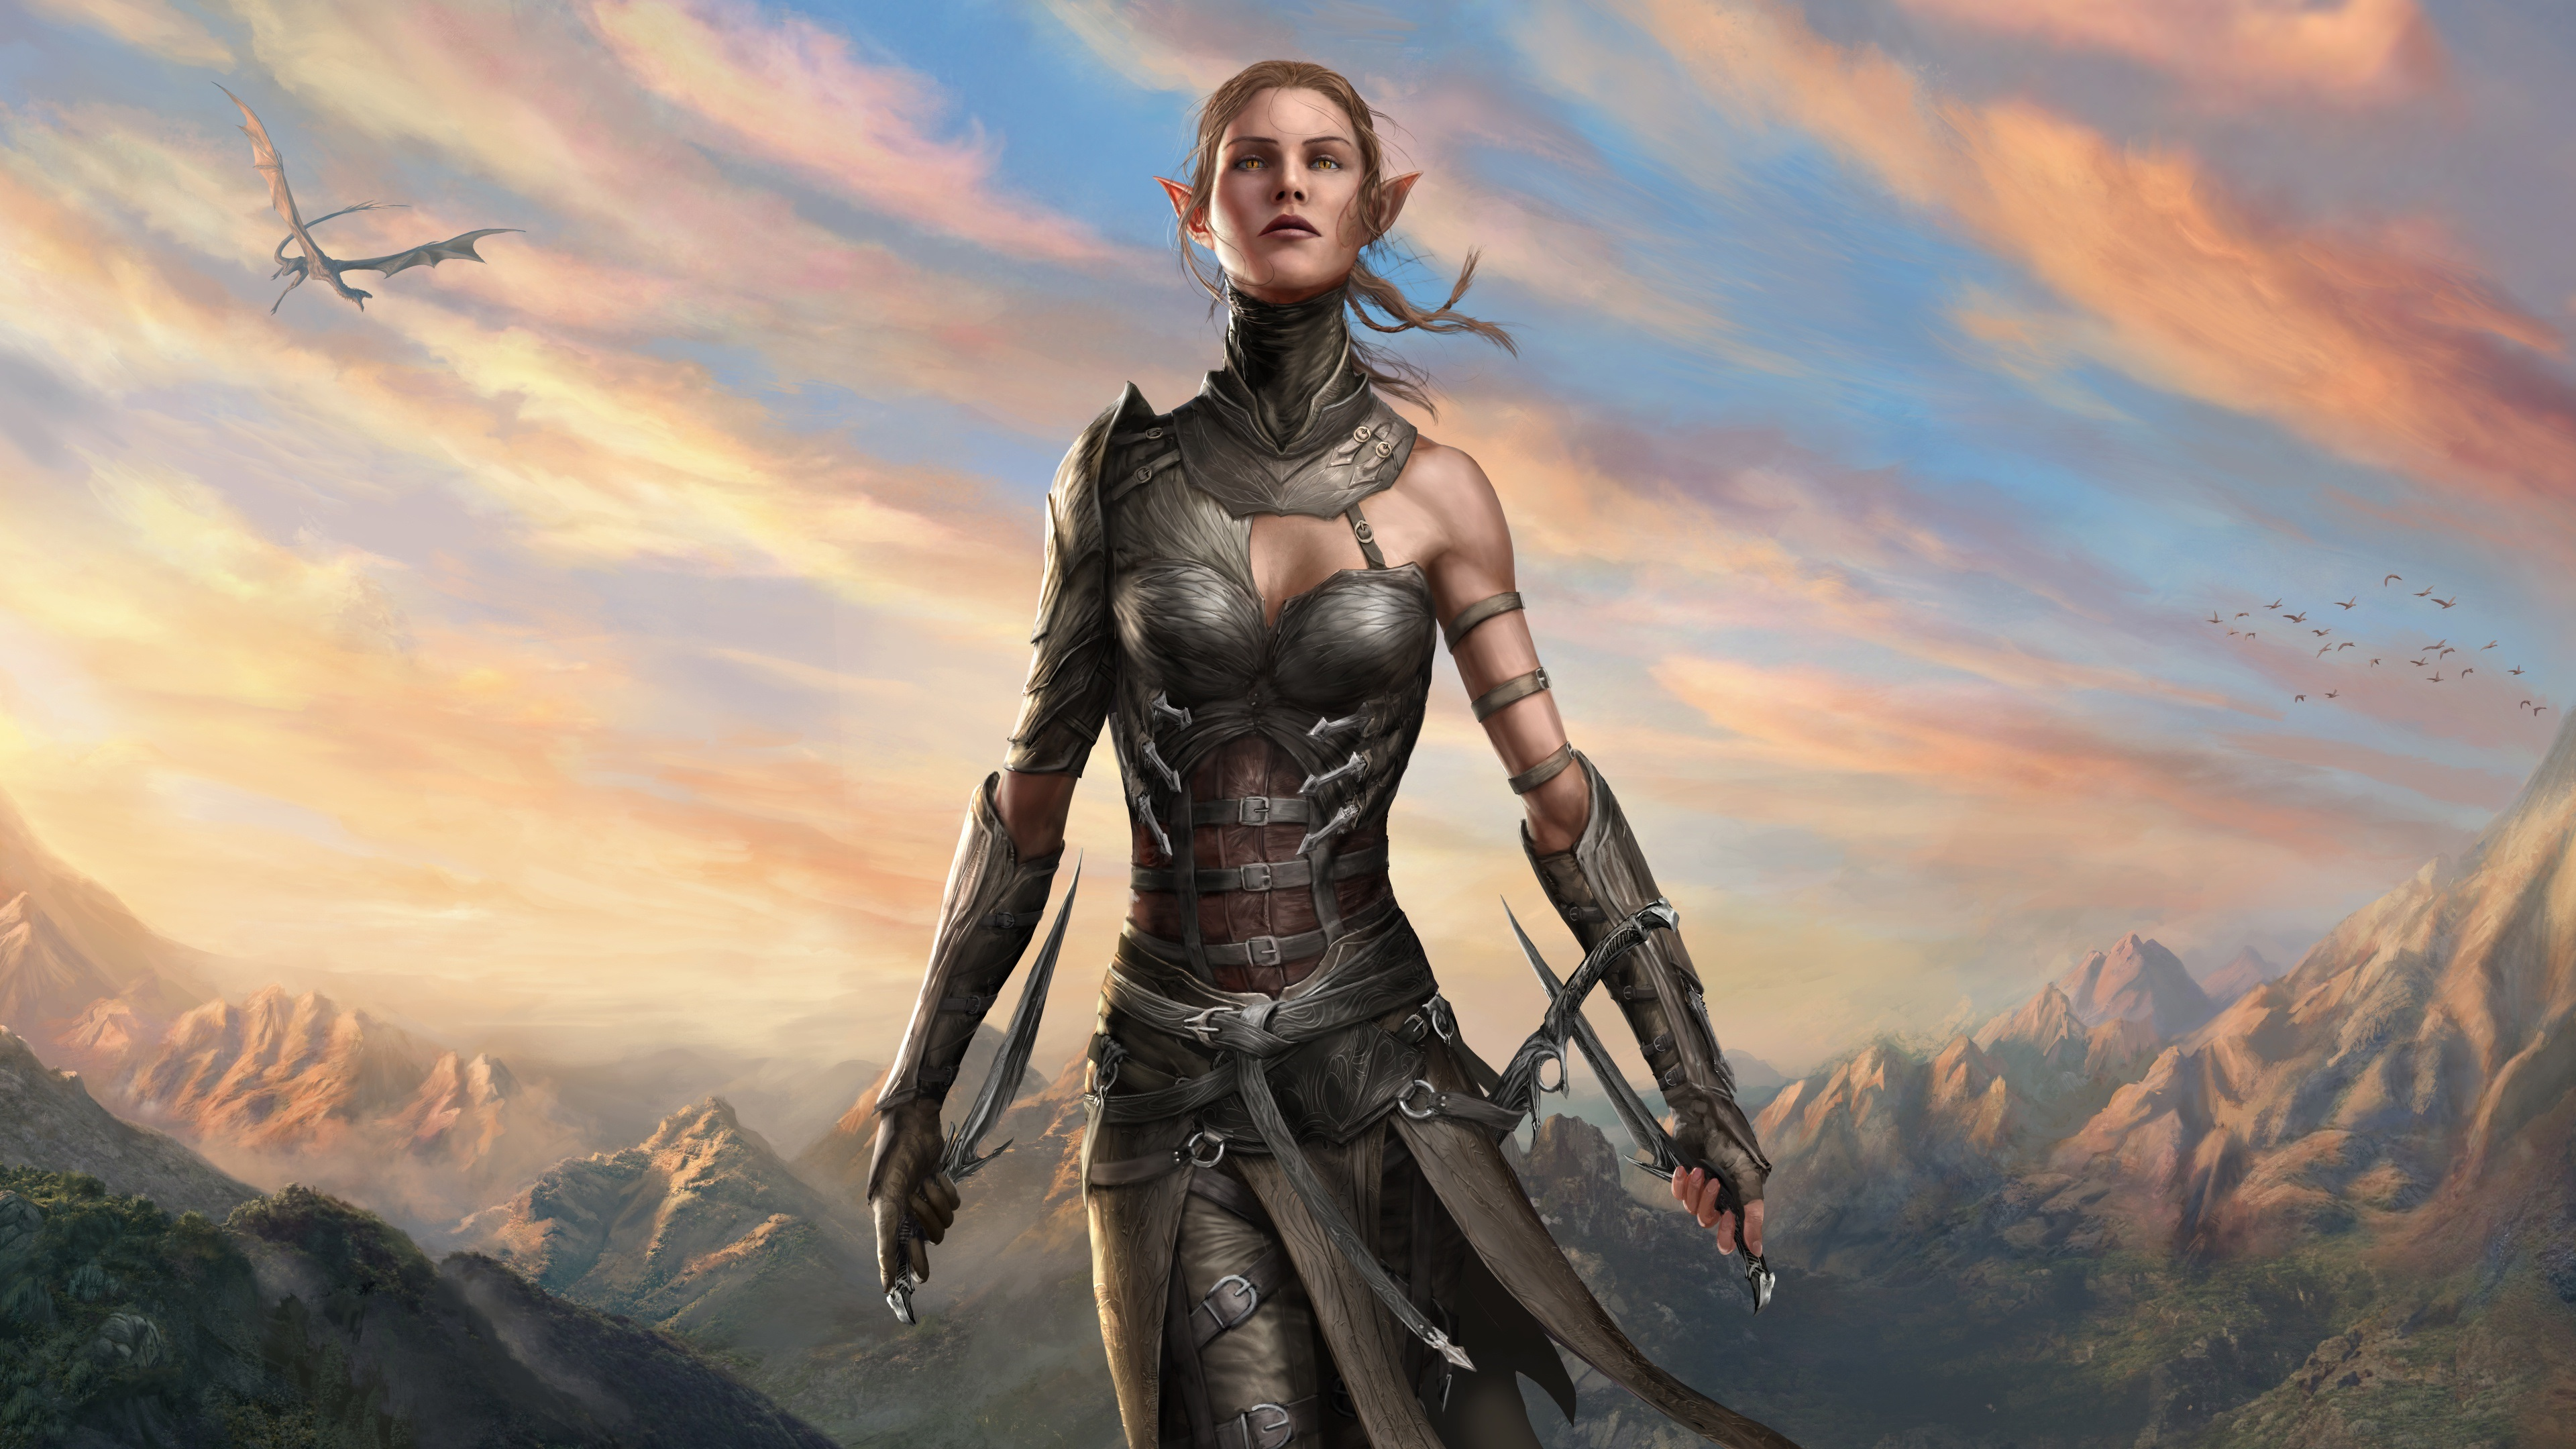 Wallpaper Divinity Original Sin 2 Elf Girl Warrior 3840x2160